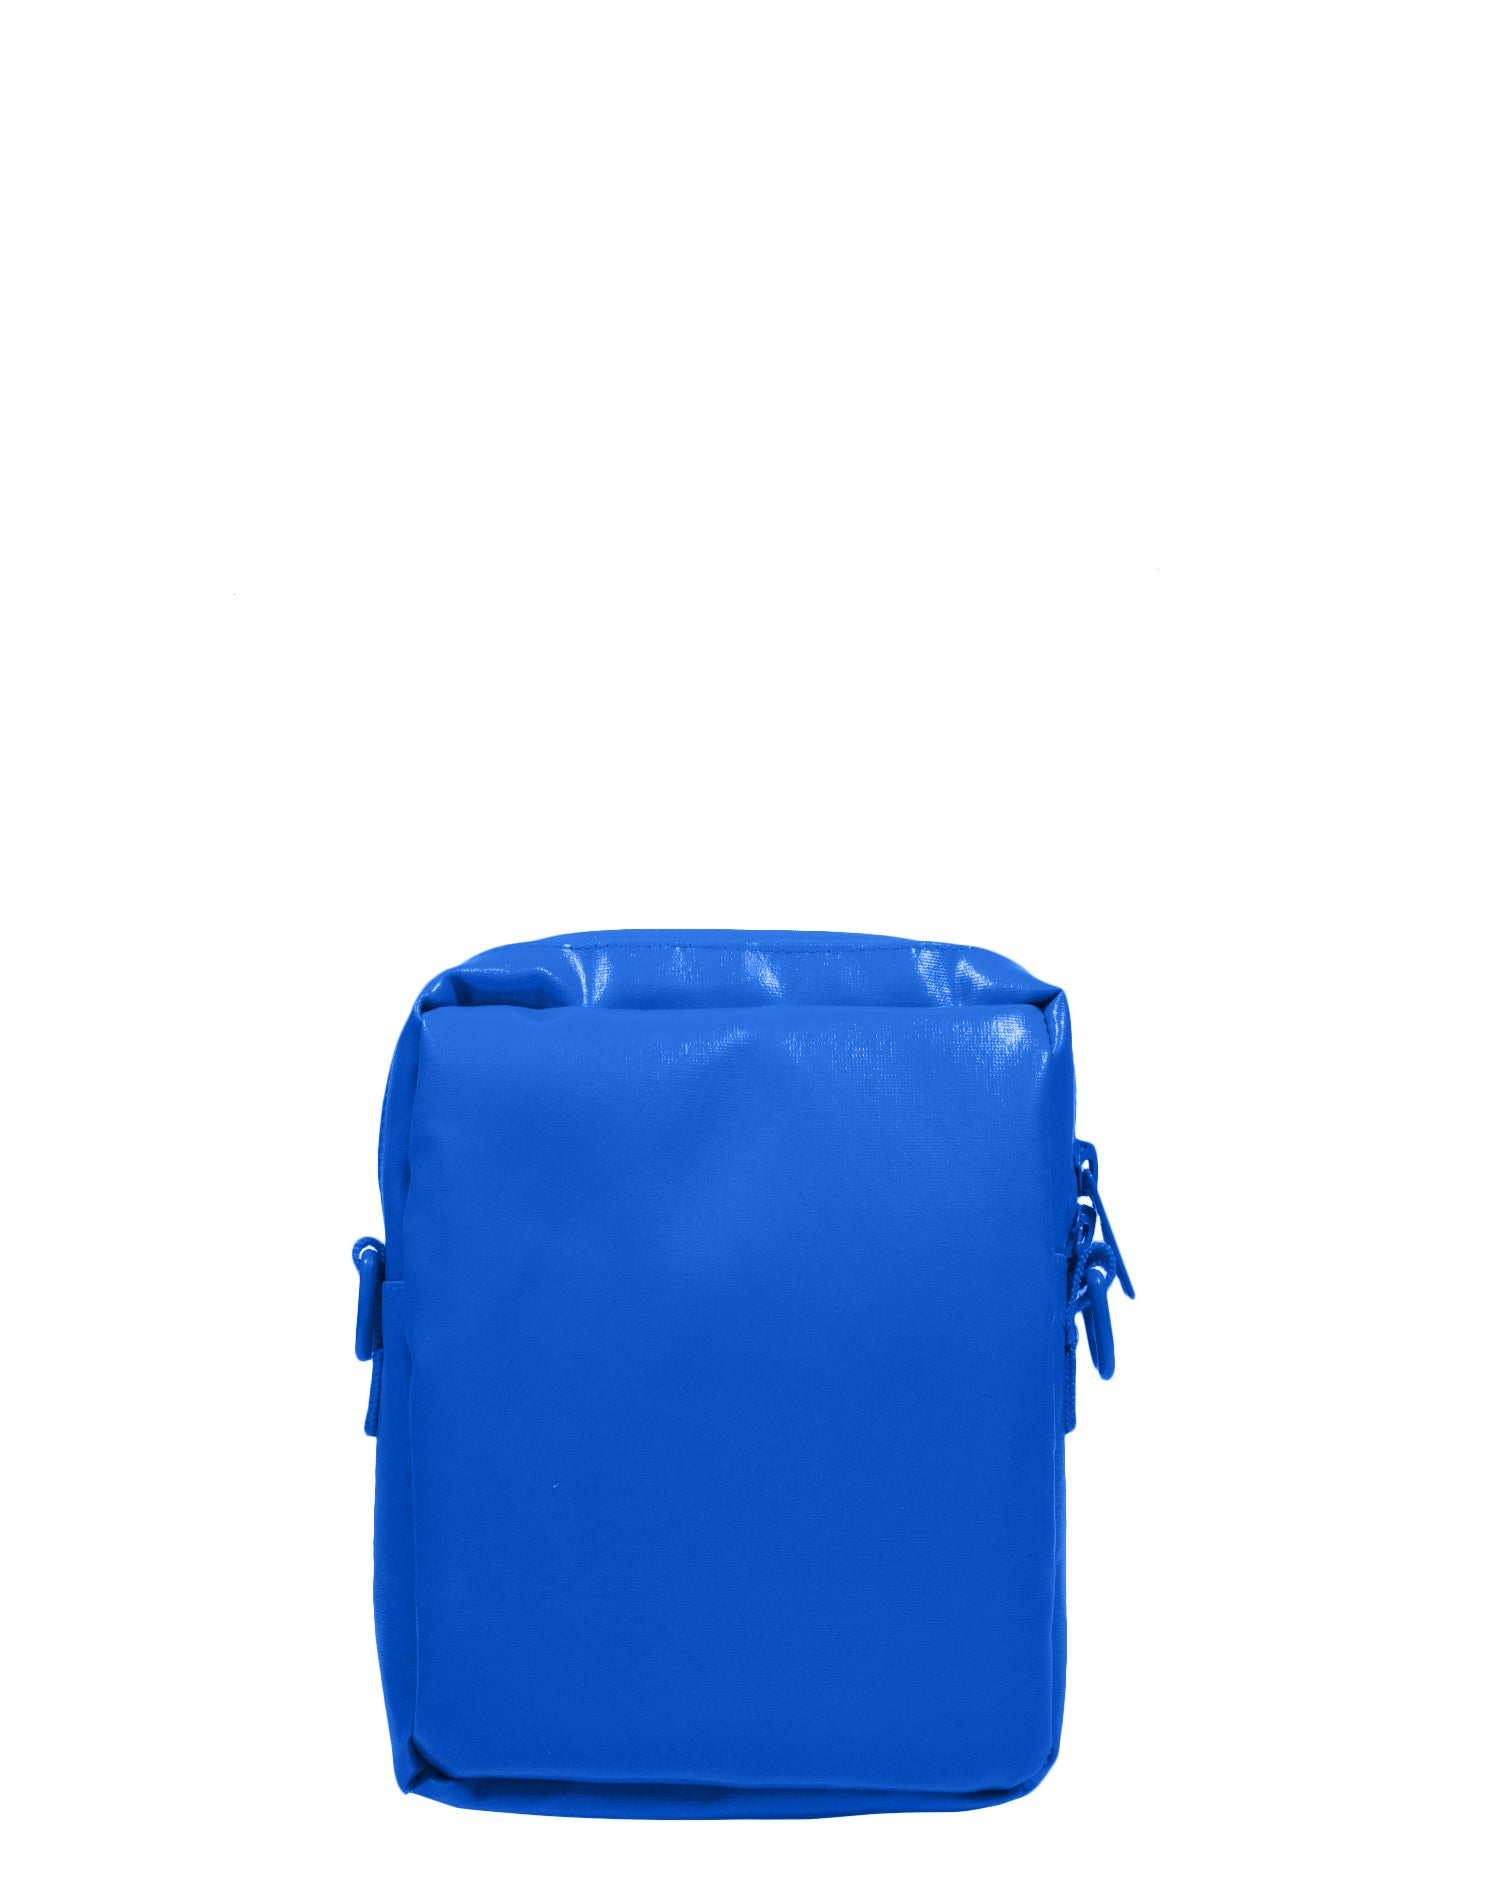 Electric Blue Tarpaulin Canvas Shoulder Bag.藍色防水帆布斜孭袋